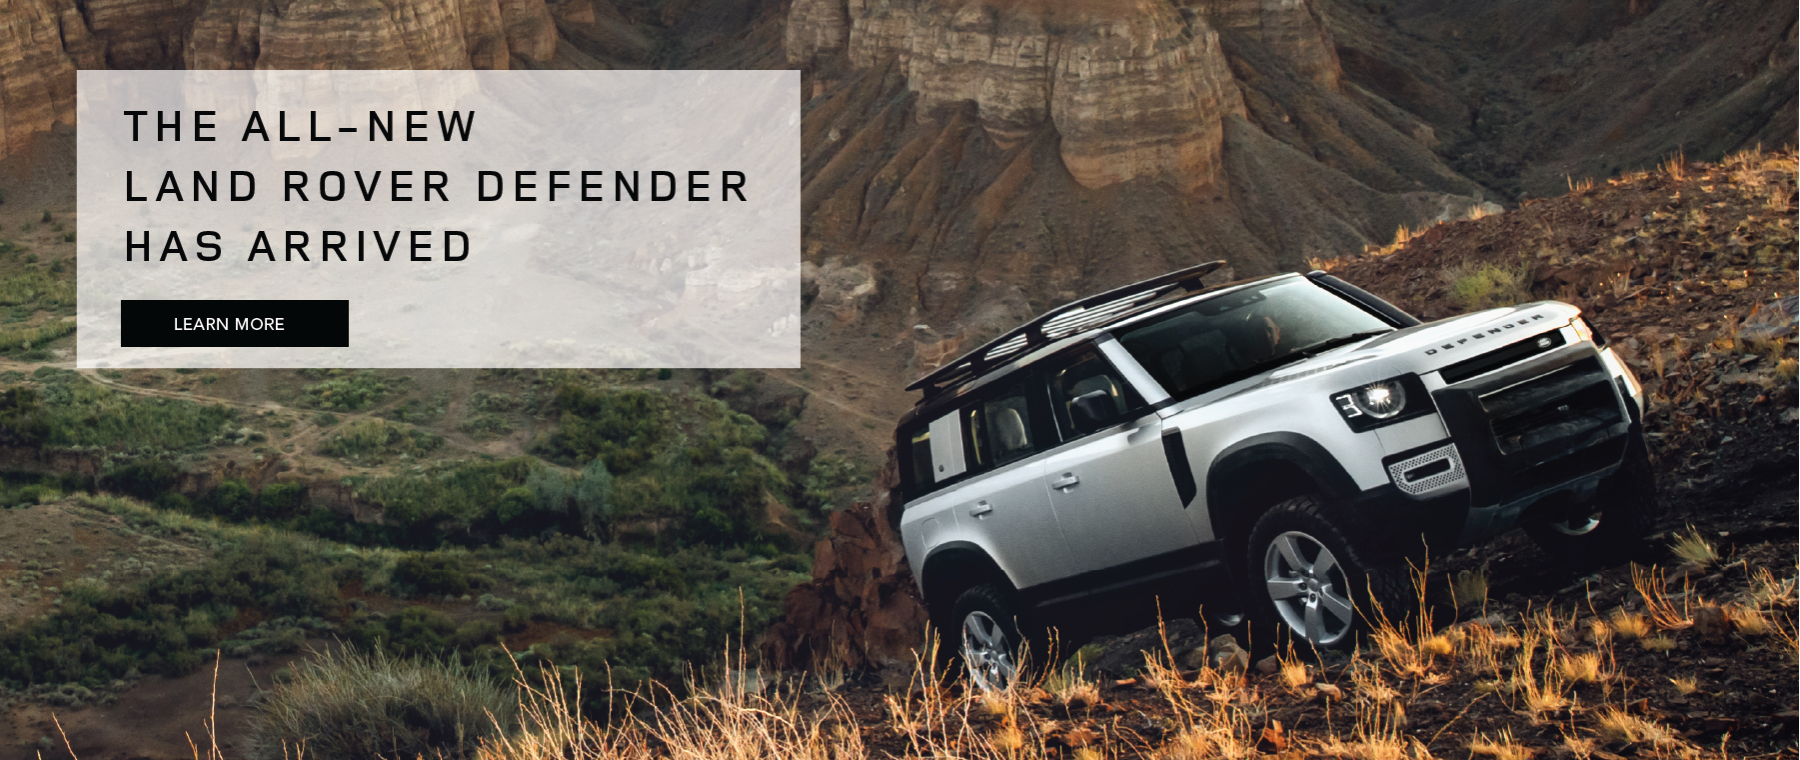 LAND ROVER DEFENDER DRIVING UP MOUNTAIN ON ON ROCKY TERRAIN WITH TREE COVERED VALLEY BELOW. THE ALL-NEW LAND ROVER DEFENDER HAS ARRIVED. LEARN MORE.